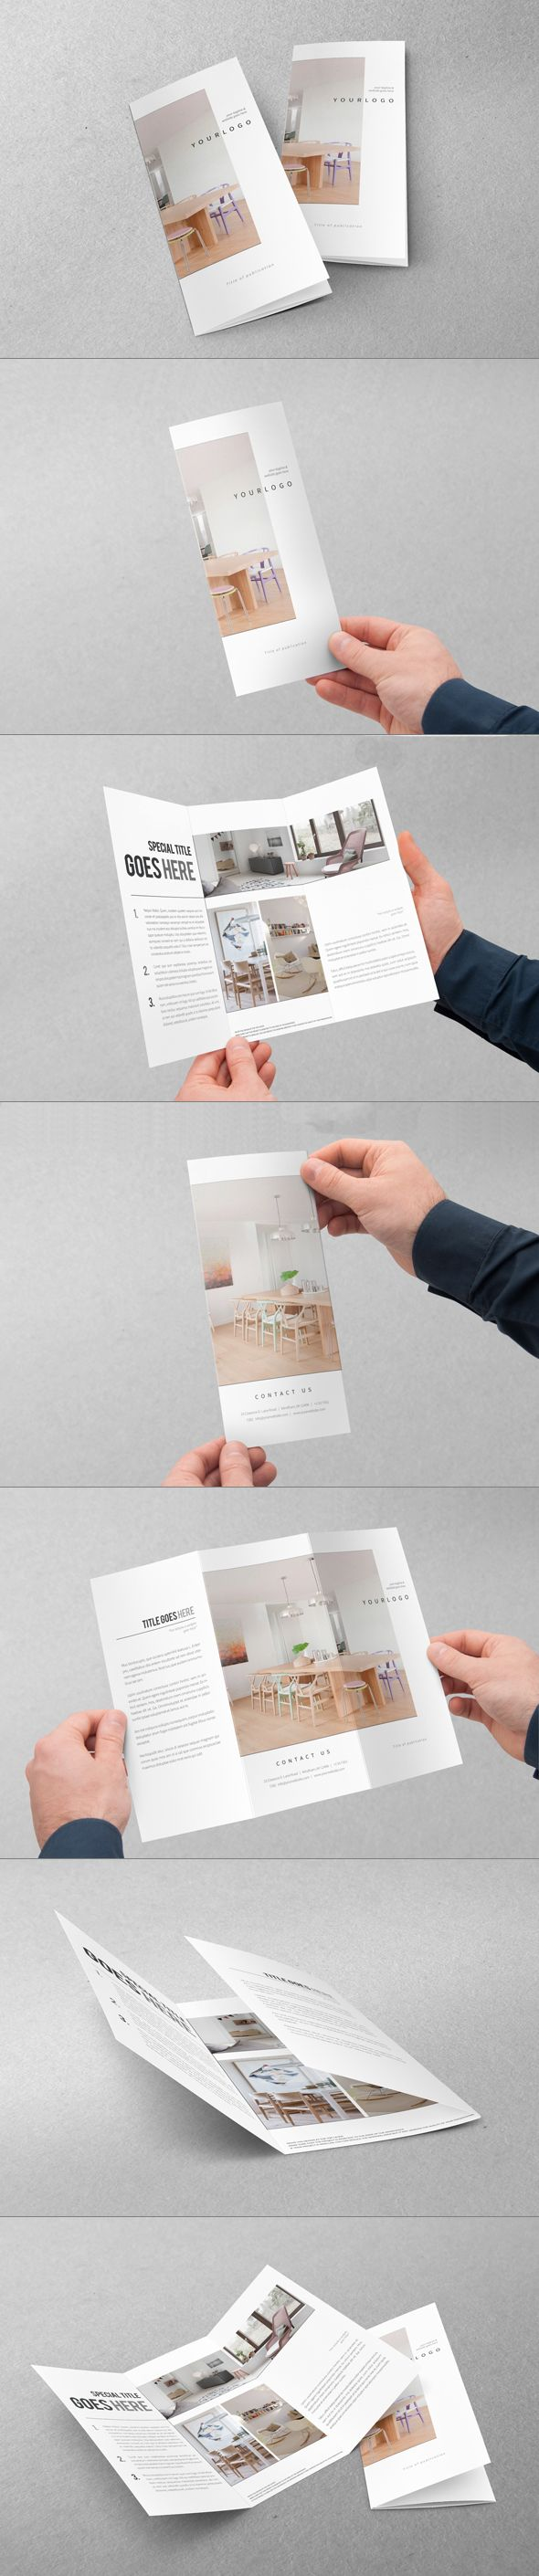 Minimal Interior Design Trifold. Download here: http:∕∕graphicriver.net∕item∕minimal-interior-design-trifold∕8989296?ref=abradesign #design #brochure #trifold